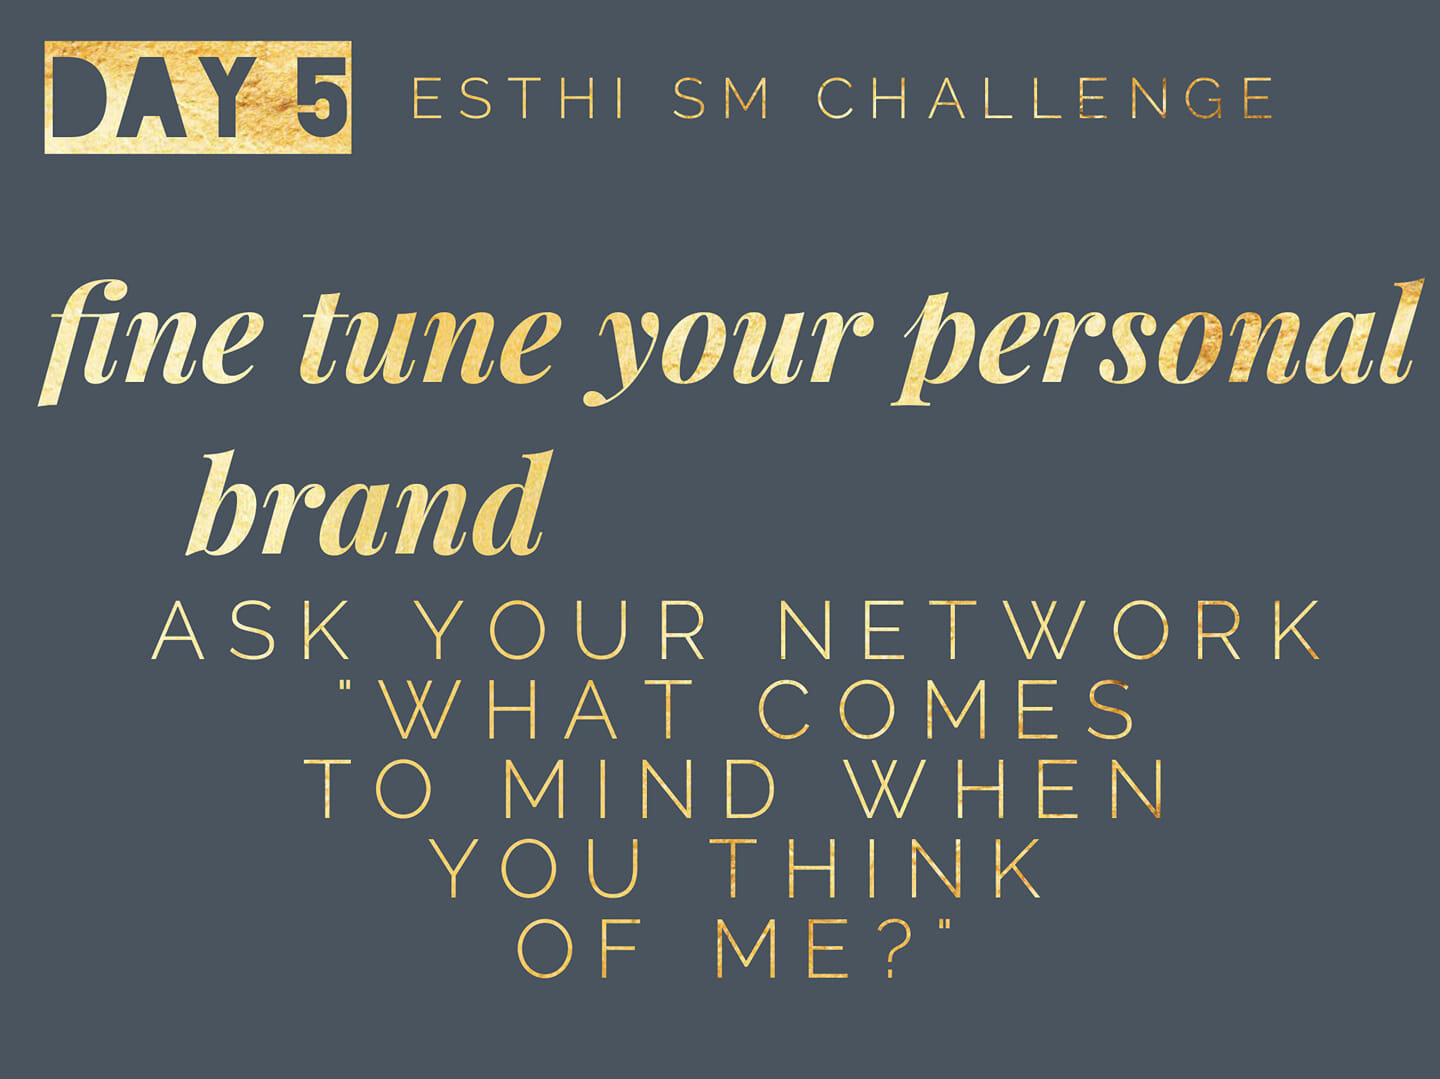 fine tune your personal brand - What is your ideal business vibe? Think about 2 years ahead from now. What do you want to be known for? What colors are your scheme?How about starting that process today?!It starts with awareness and an inventory of the